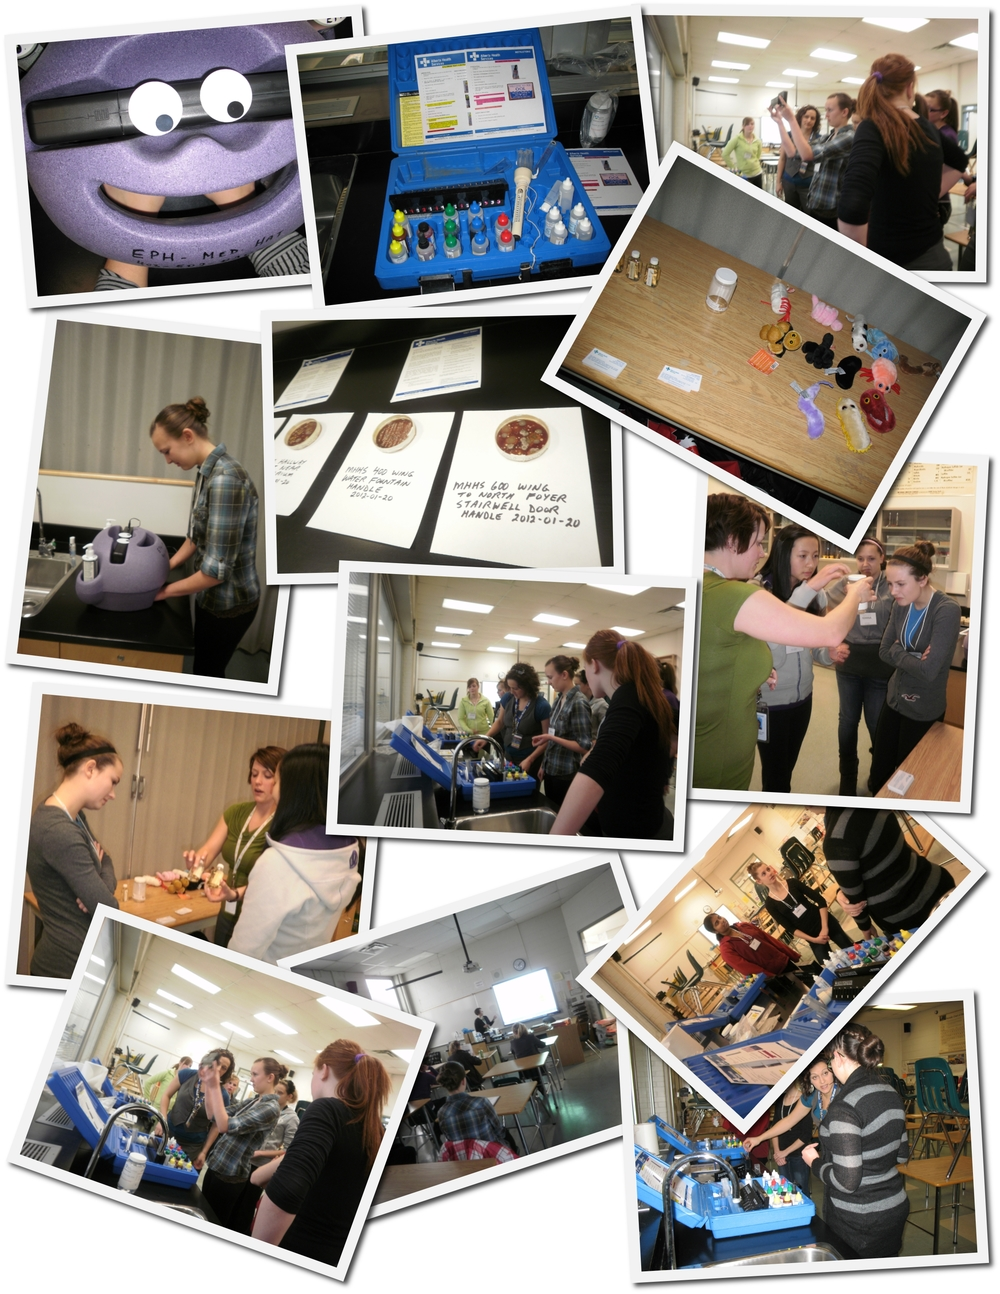 2012-01-30 Operation Minerva Health Inspectors Collage.jpg